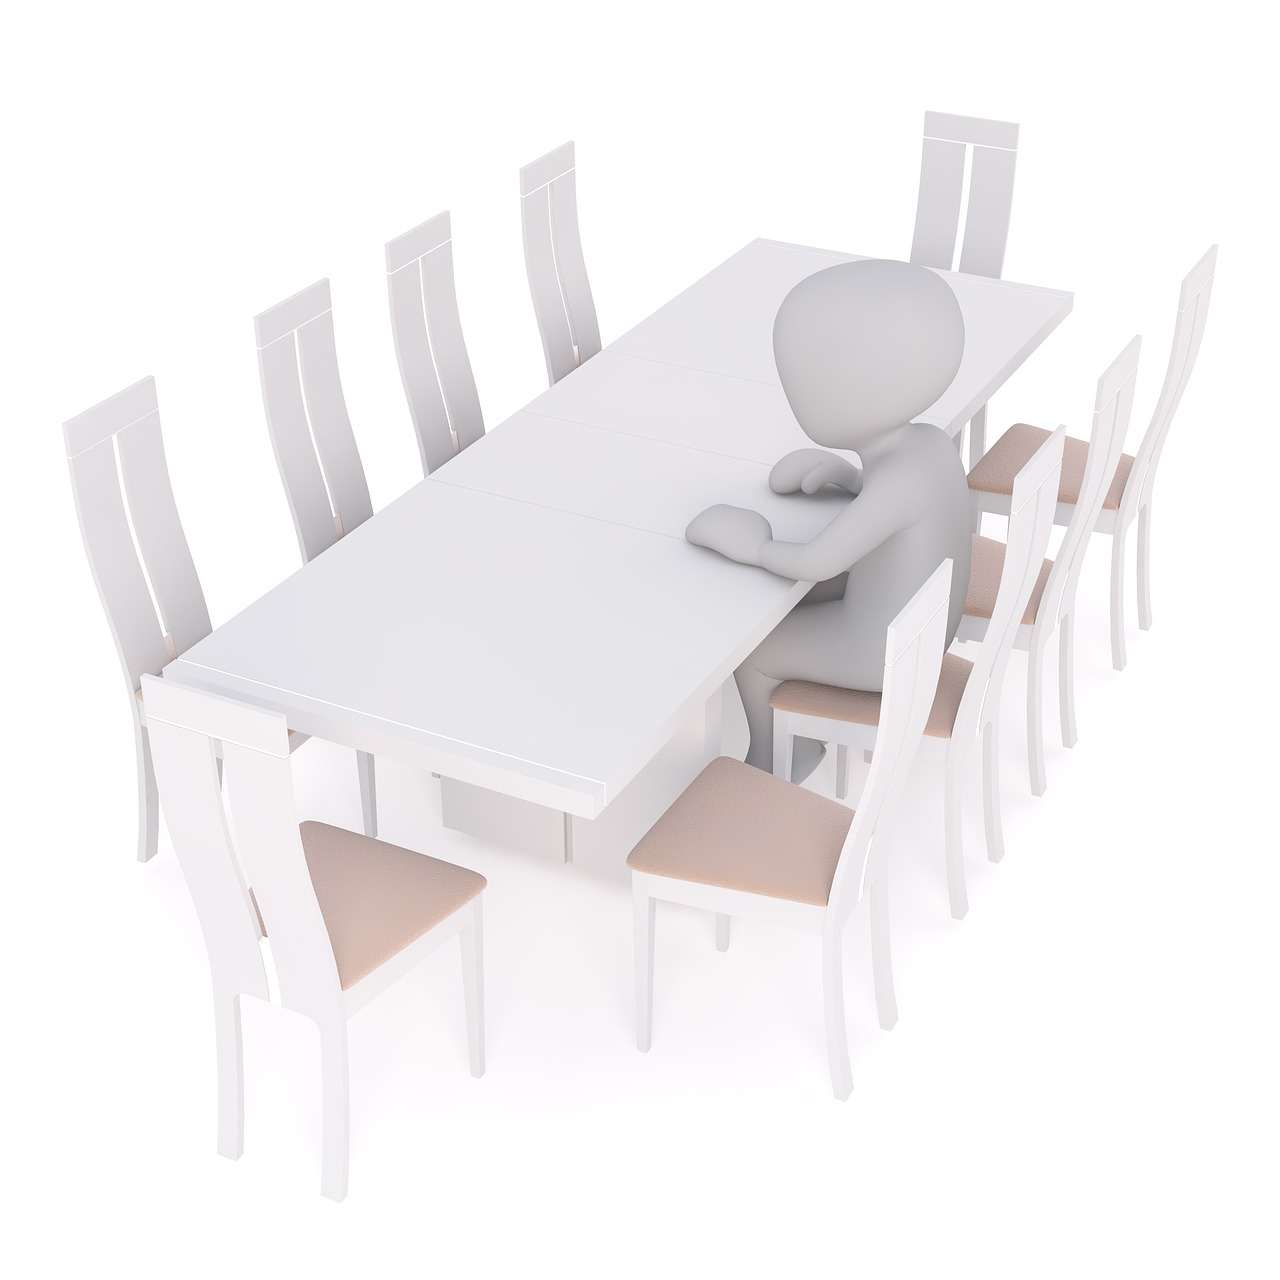 Wondrous Table Dining Table Chairs Kitchen Alone Free Image From Inzonedesignstudio Interior Chair Design Inzonedesignstudiocom